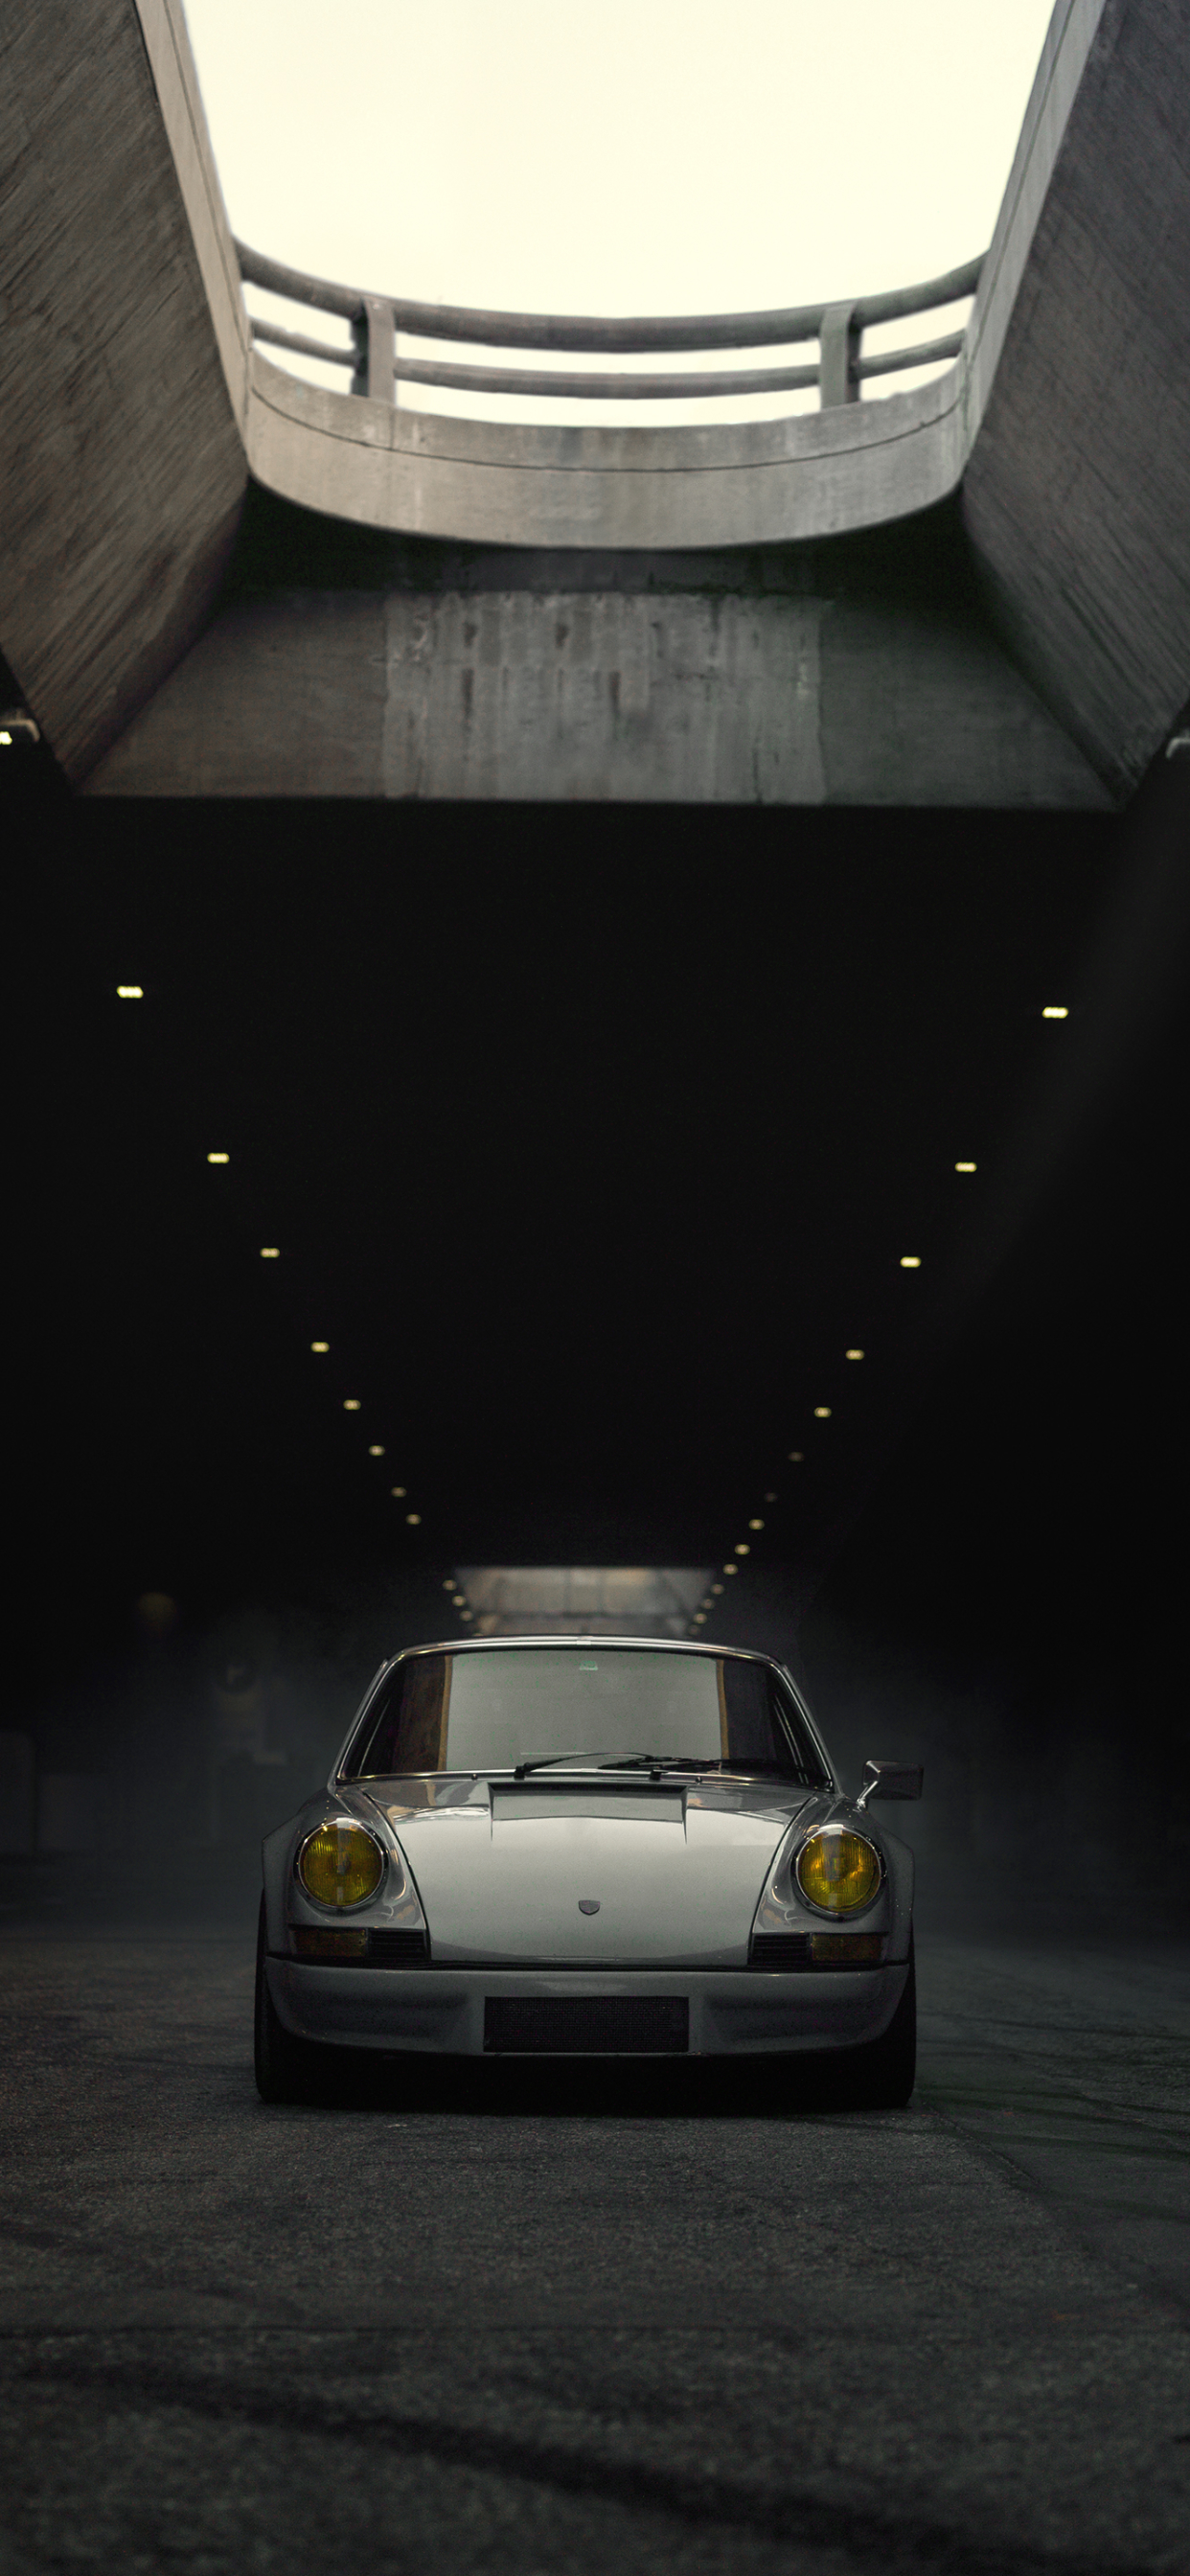 1242x2688 Porsche 911 Iphone Xs Max Wallpaper Hd Cars 4k Wallpapers Images Photos And Background